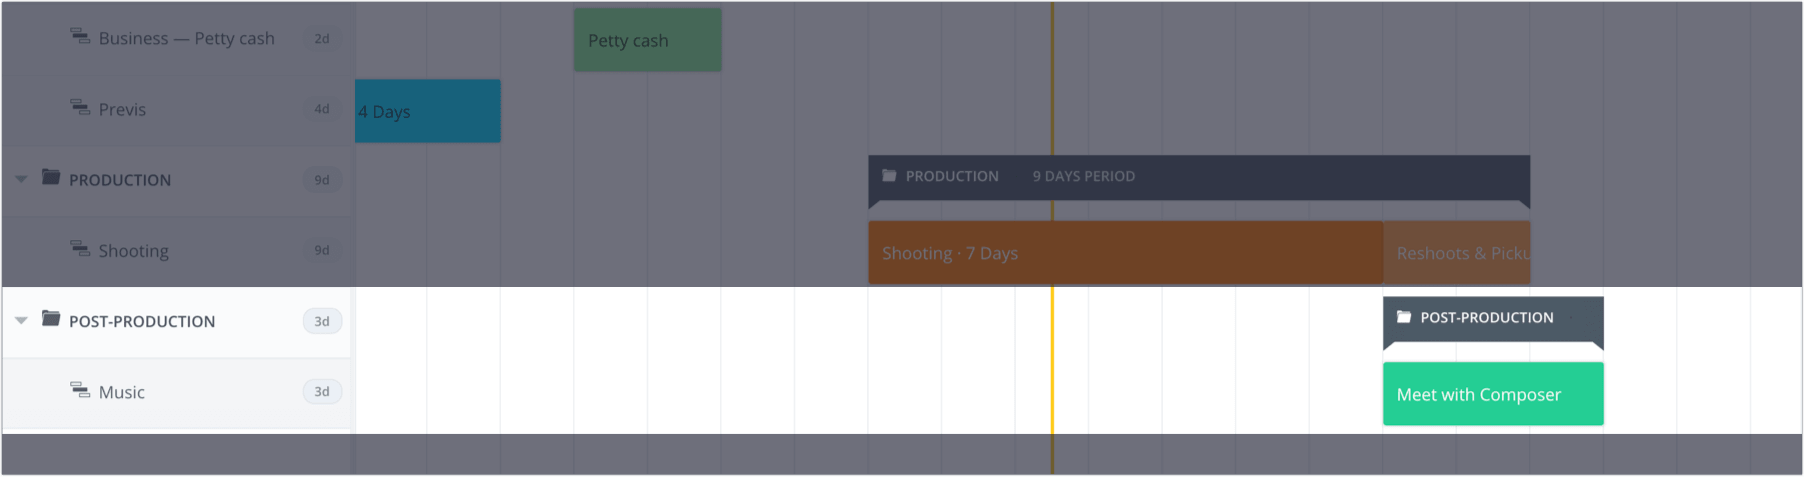 How to Plan a Shoot with a Film & Video Production Calendar - StudioBinder - 16